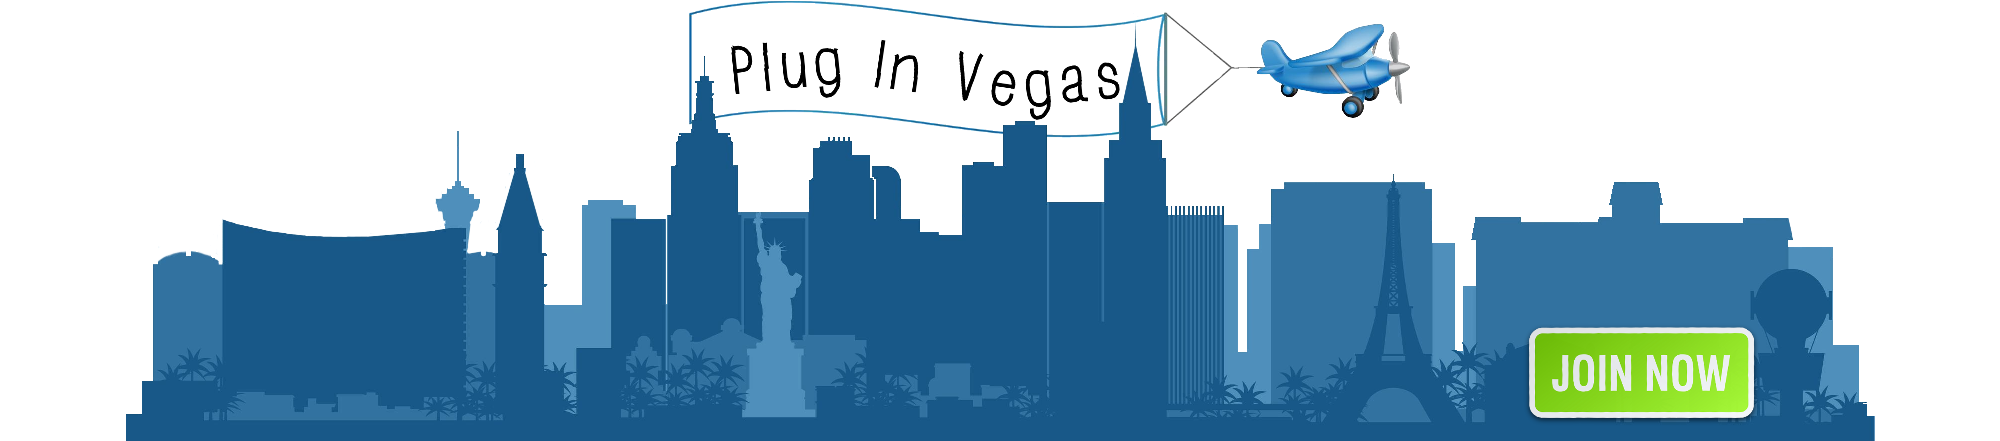 Plug In Vegas Show Ticket Deals For Locals